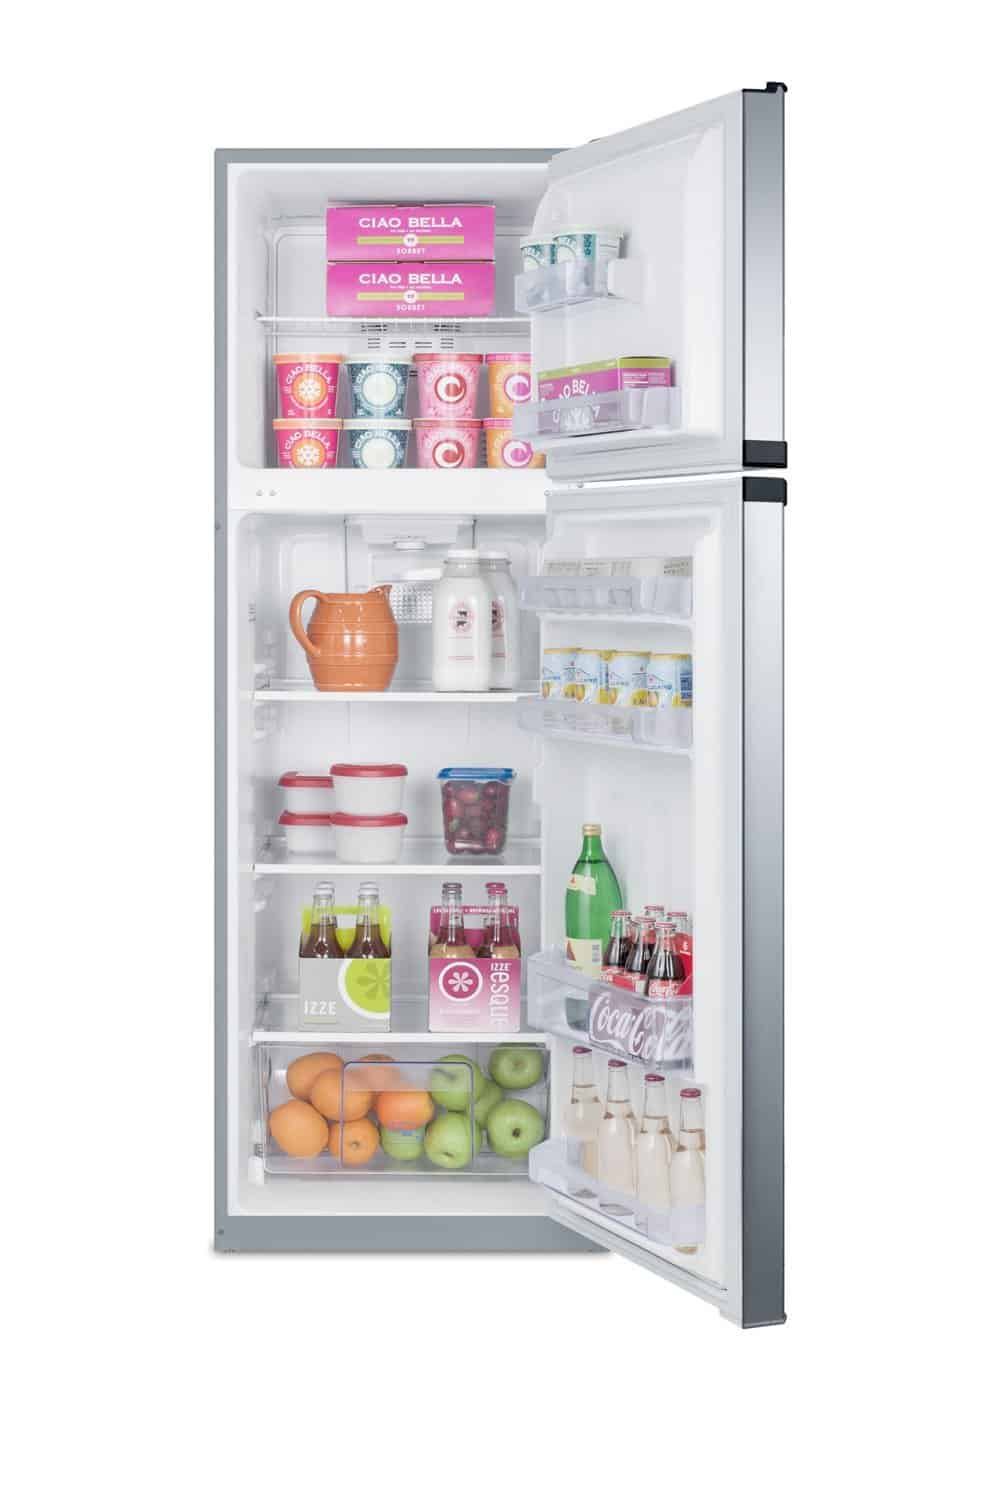 Best fridge freezers 2018 best for small spaces - Tall refrigerators small spaces property ...